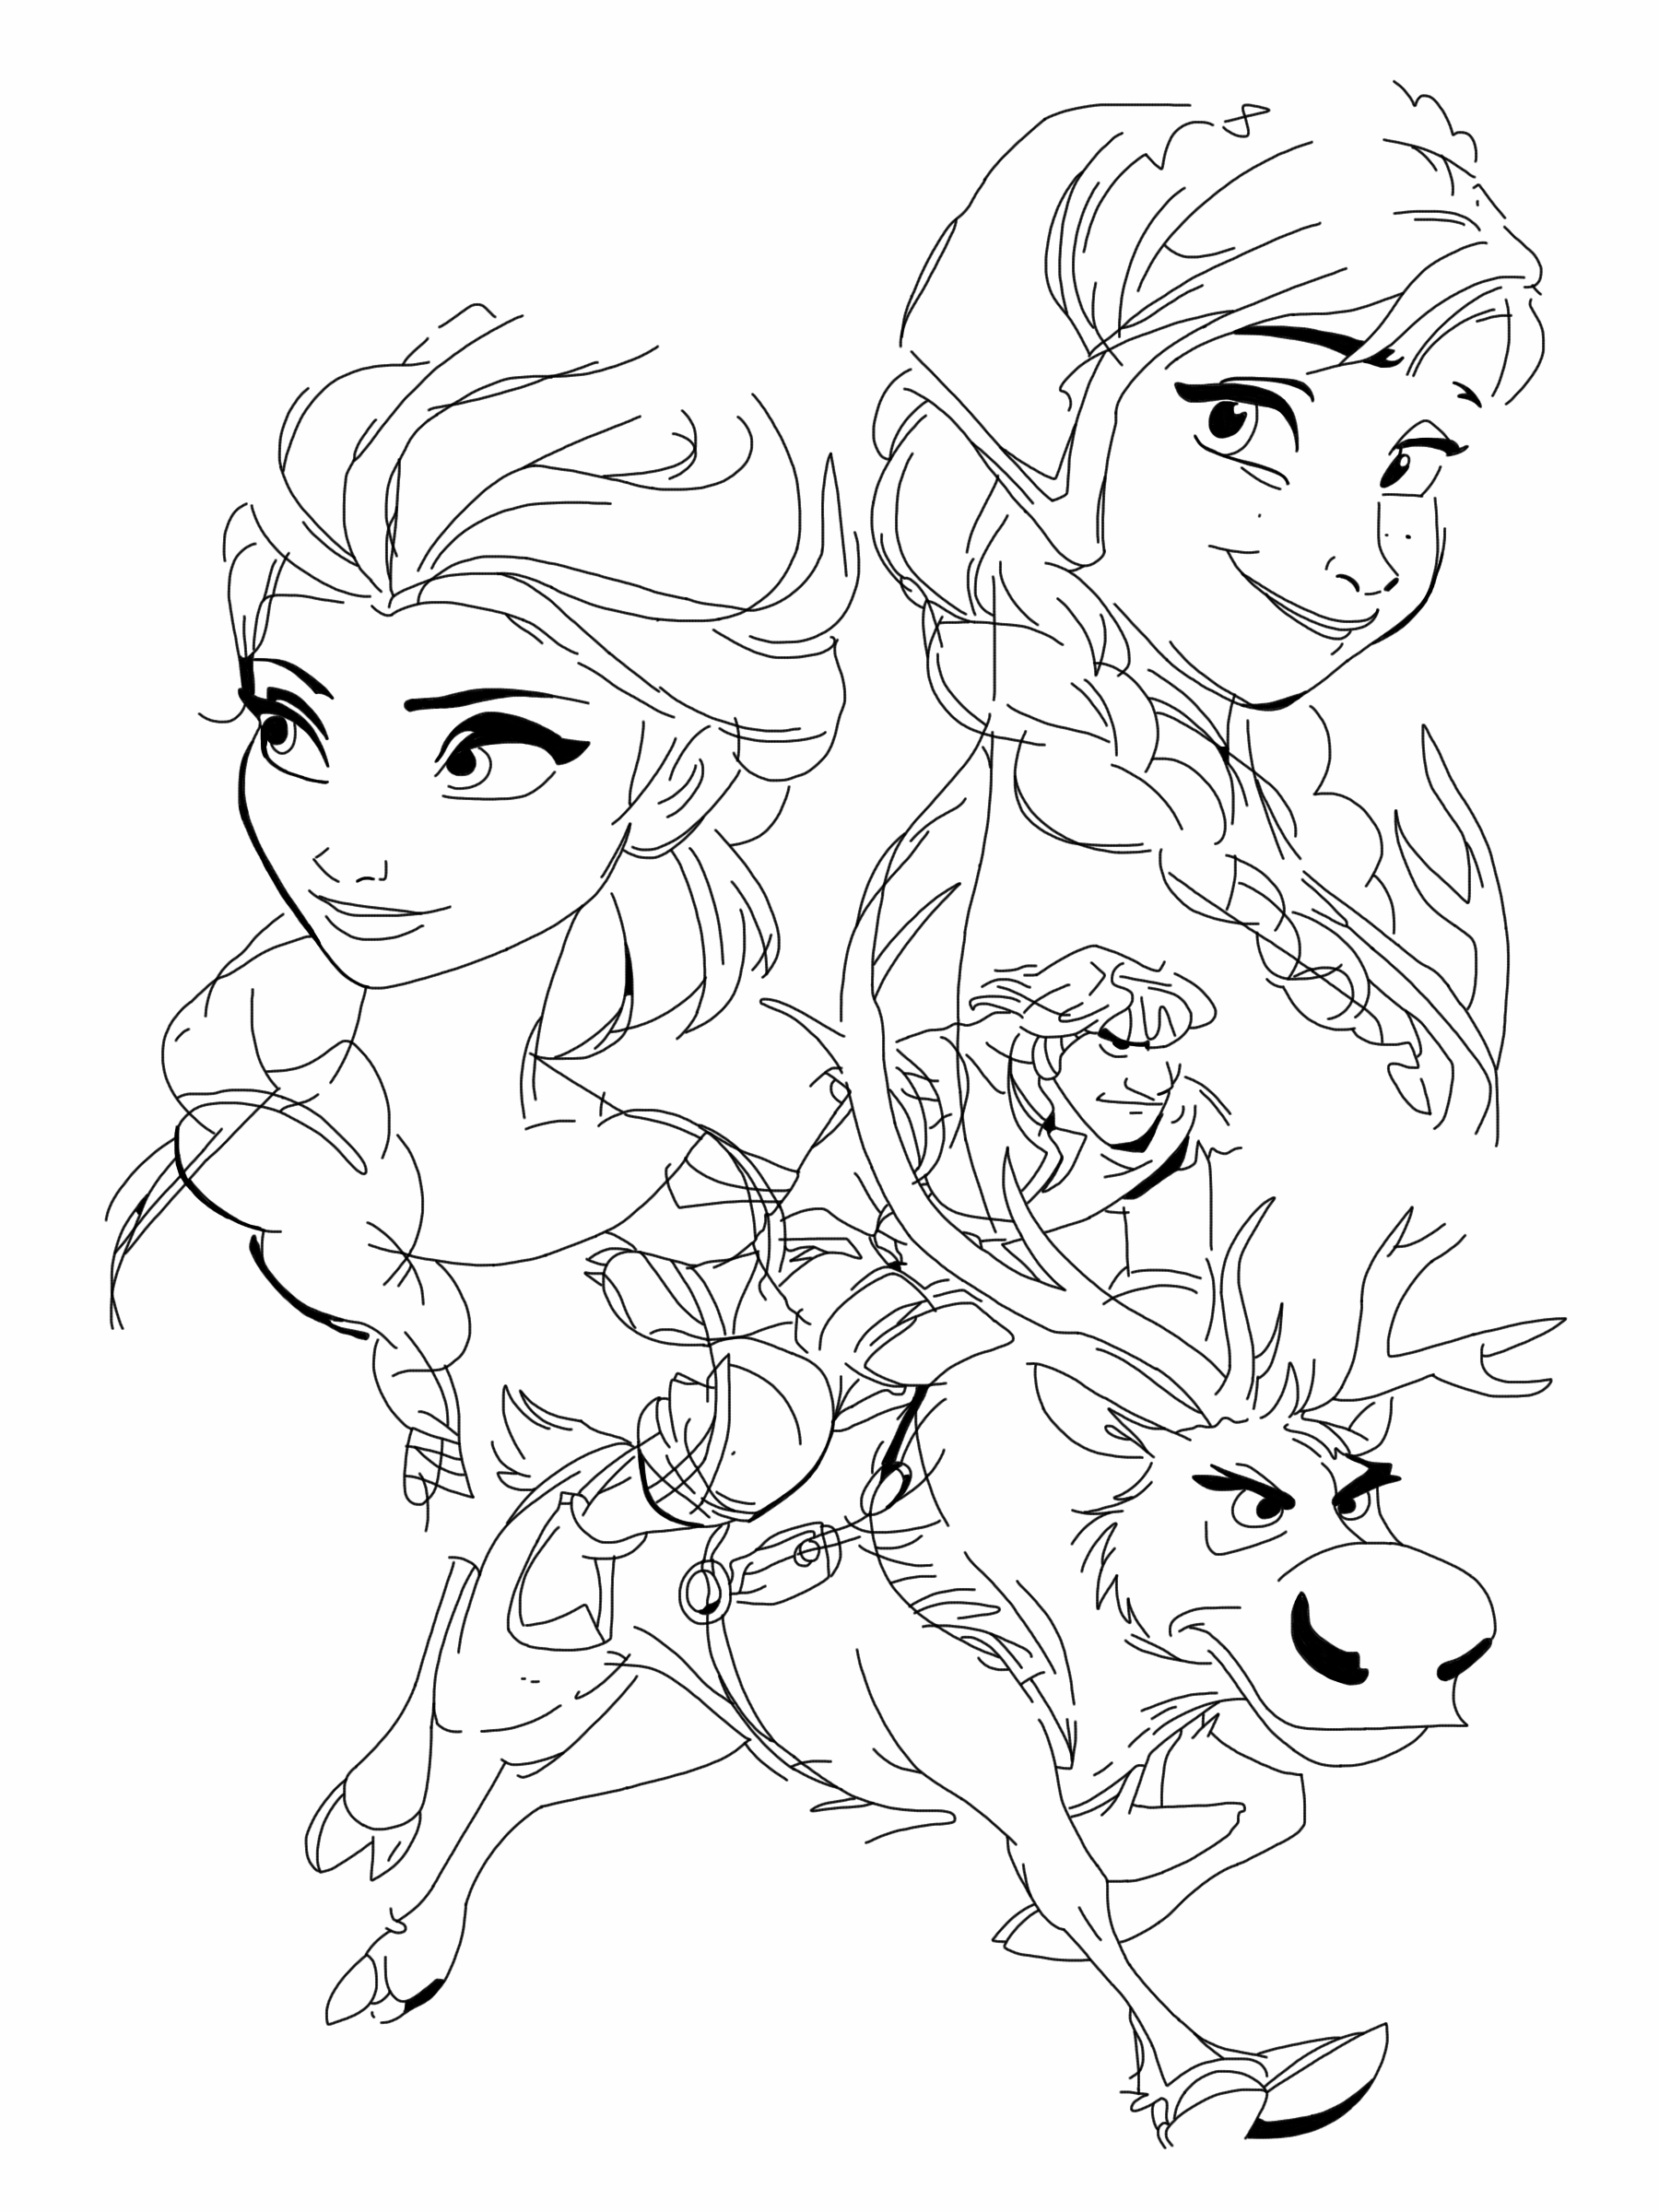 Ausmalbilder Anna Und Elsa Gratis : Frozen Drawing Anna And Elsa At Getdrawings Com Free For Personal